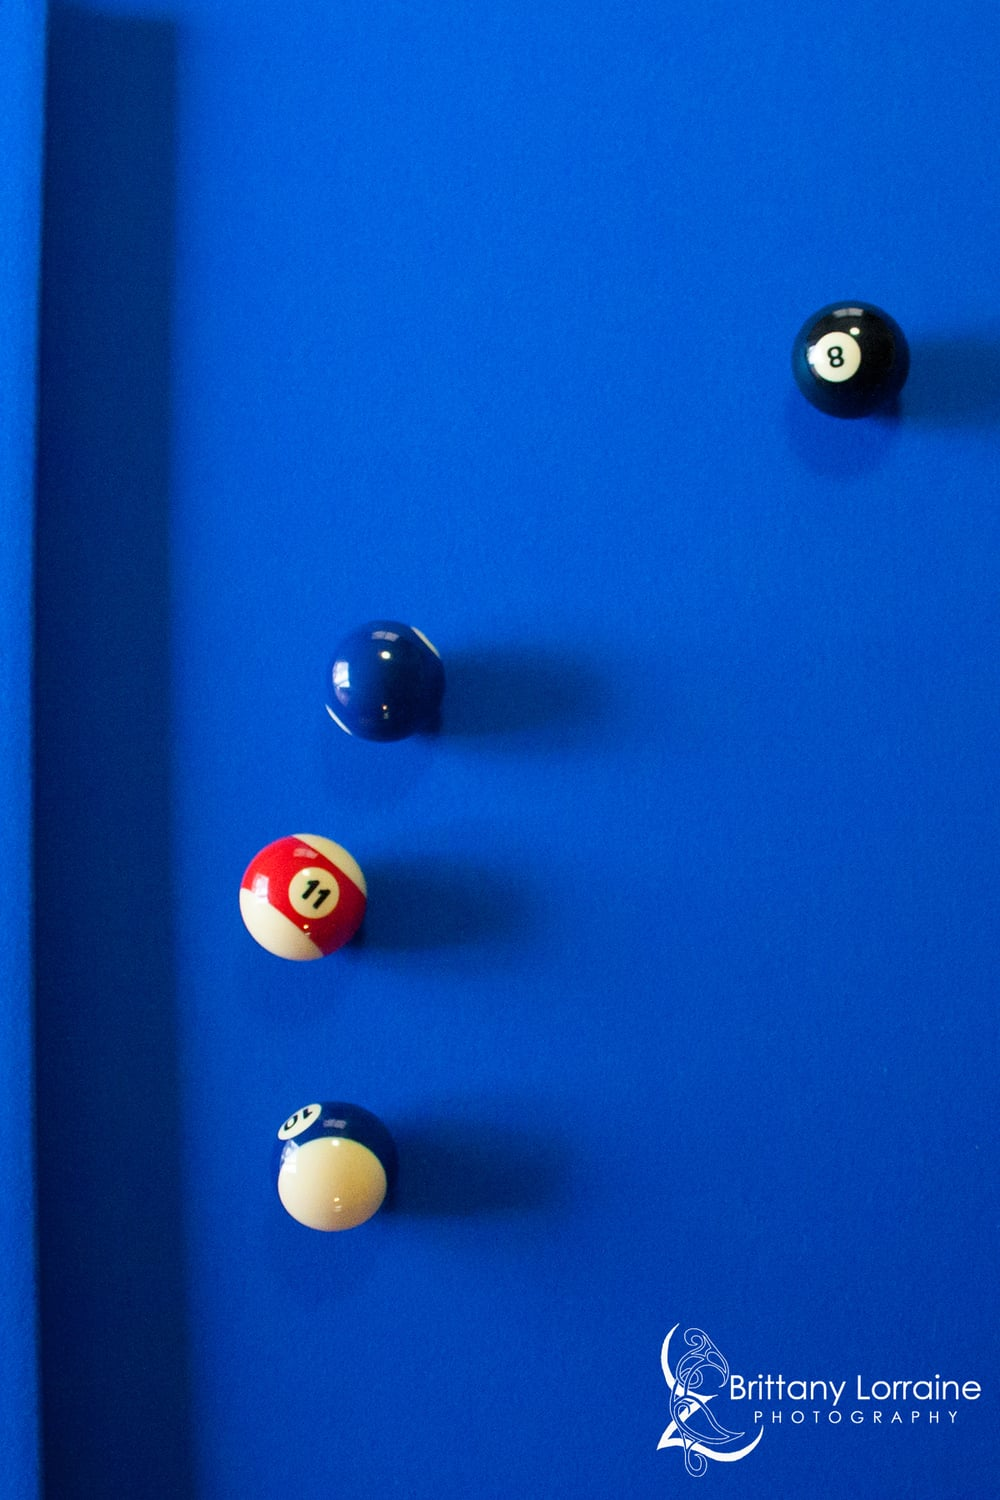 Pool Table image taken by Brittany Lorraine Photography in Estacada, OR